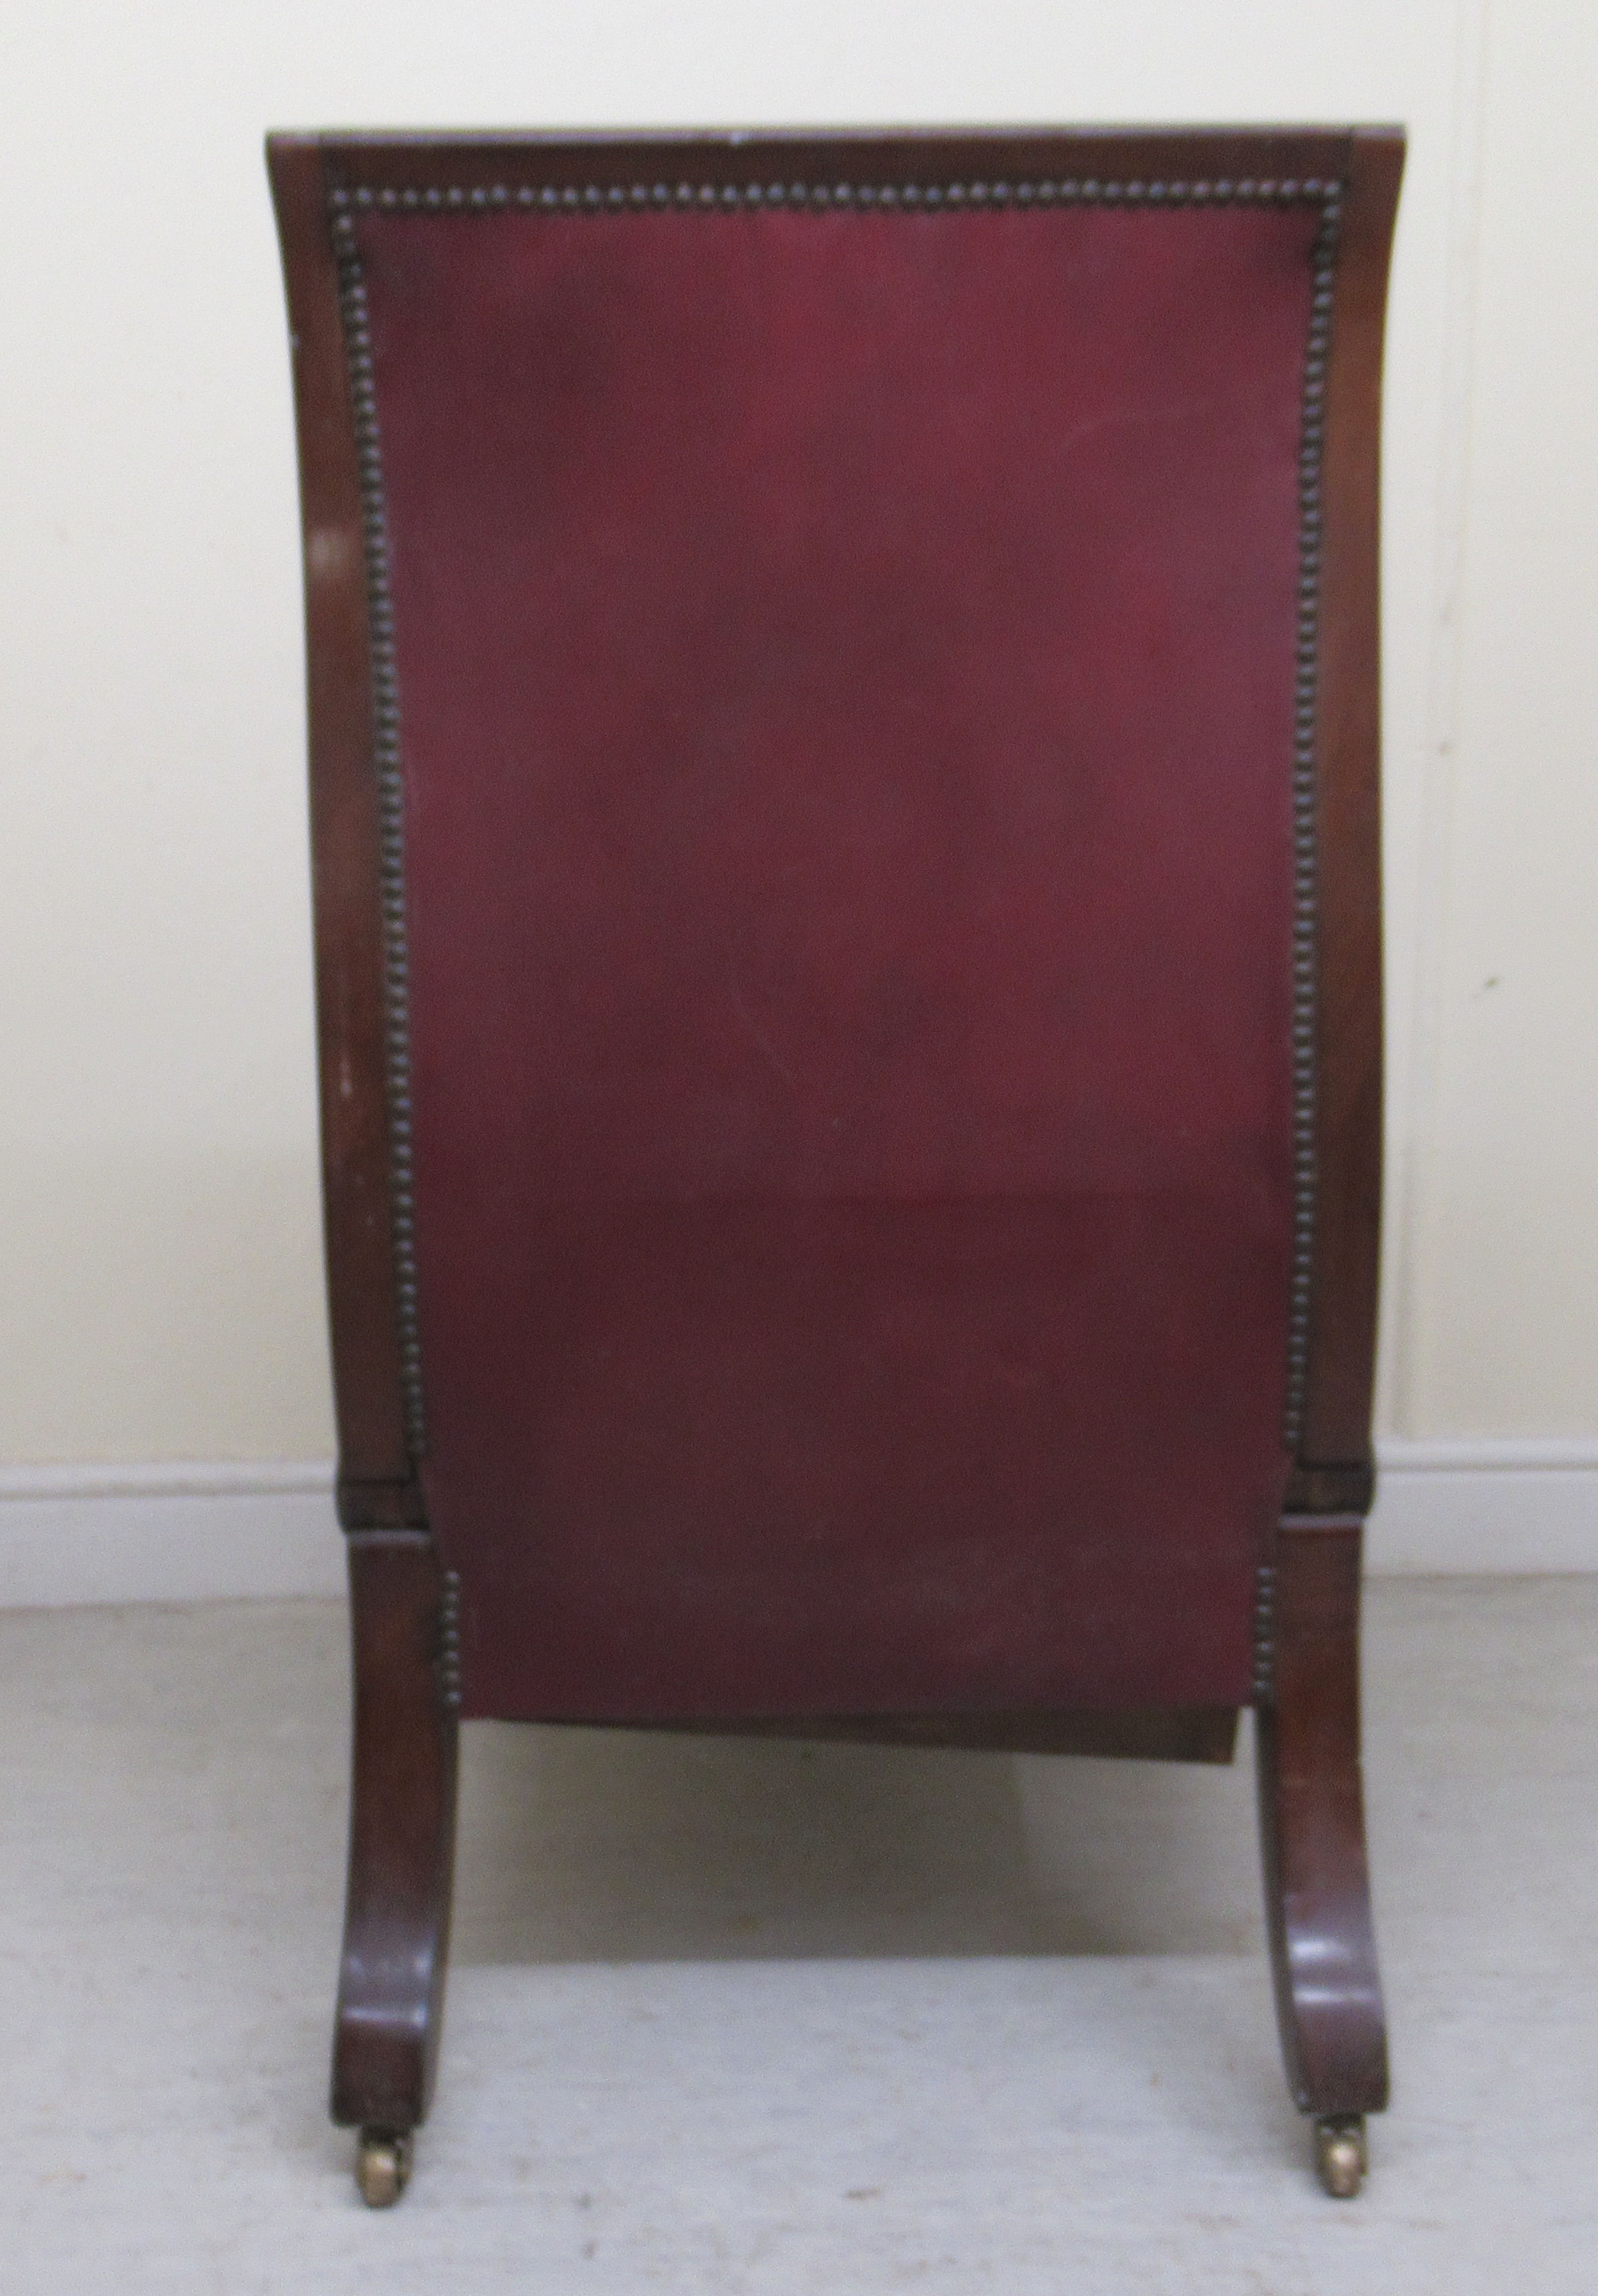 A William IV mahogany framed reclining library chair, the Daws Patent action having a height - Image 4 of 12